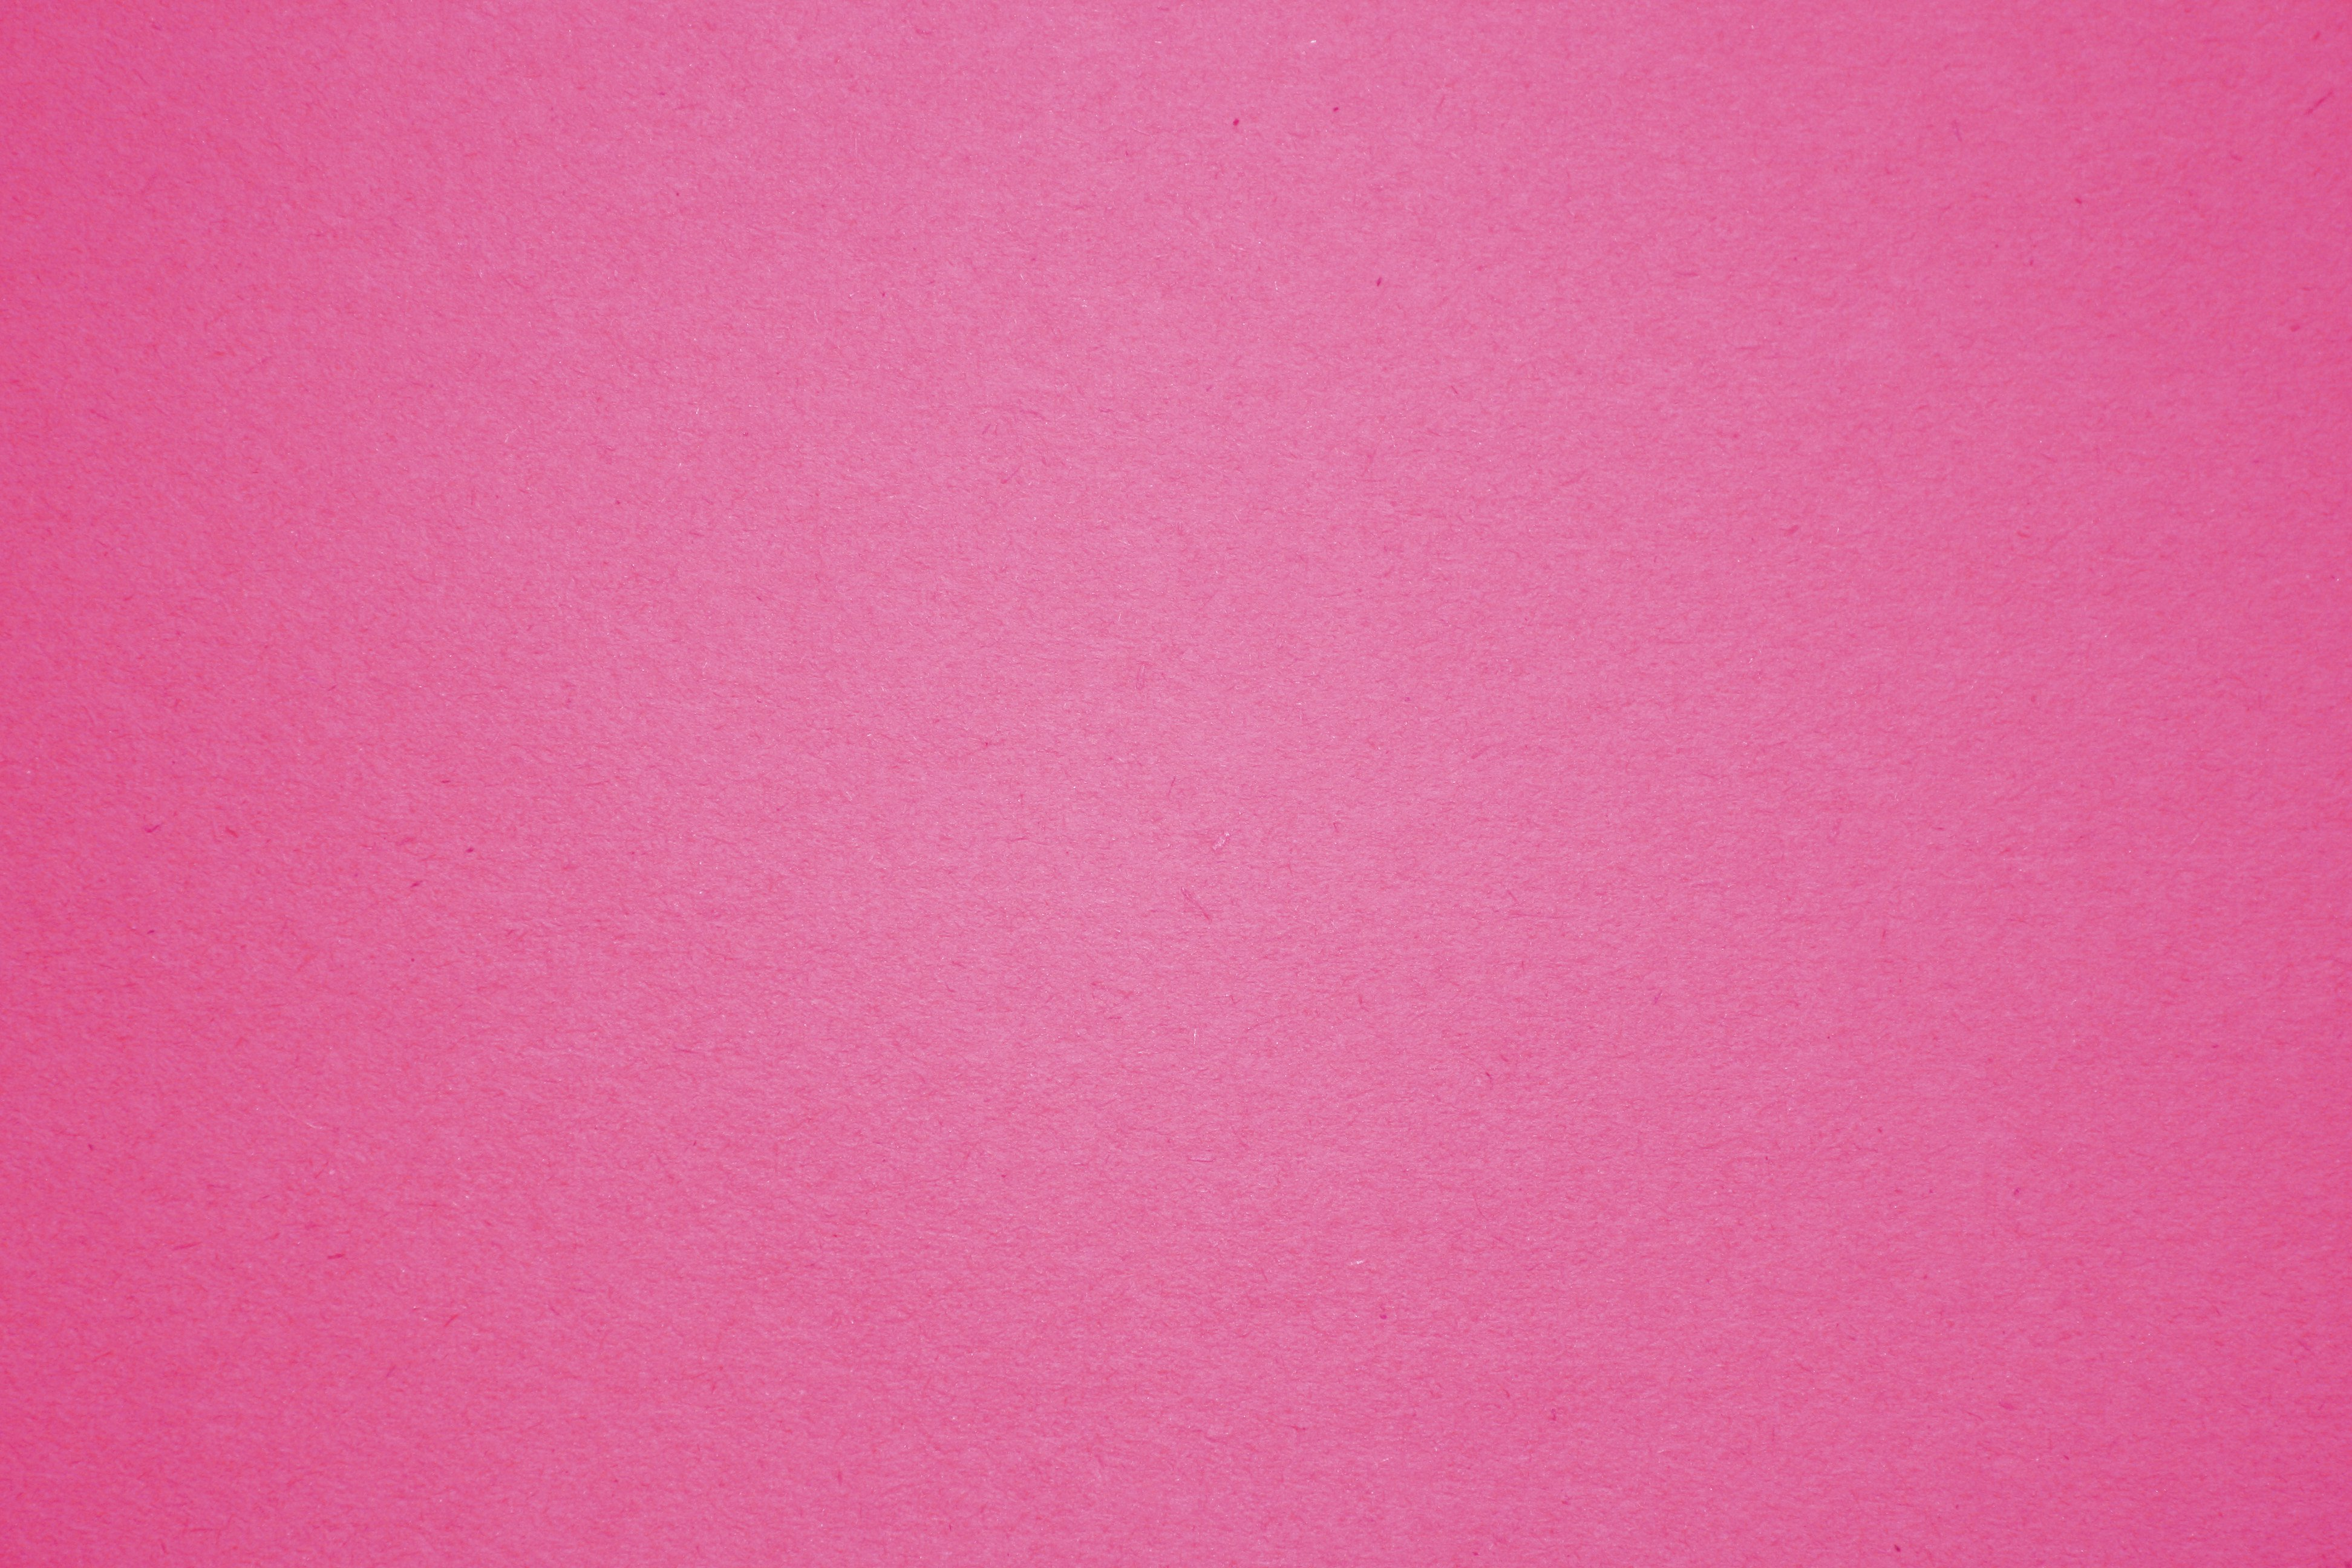 Pink Construction Paper Texture Picture Free Photograph